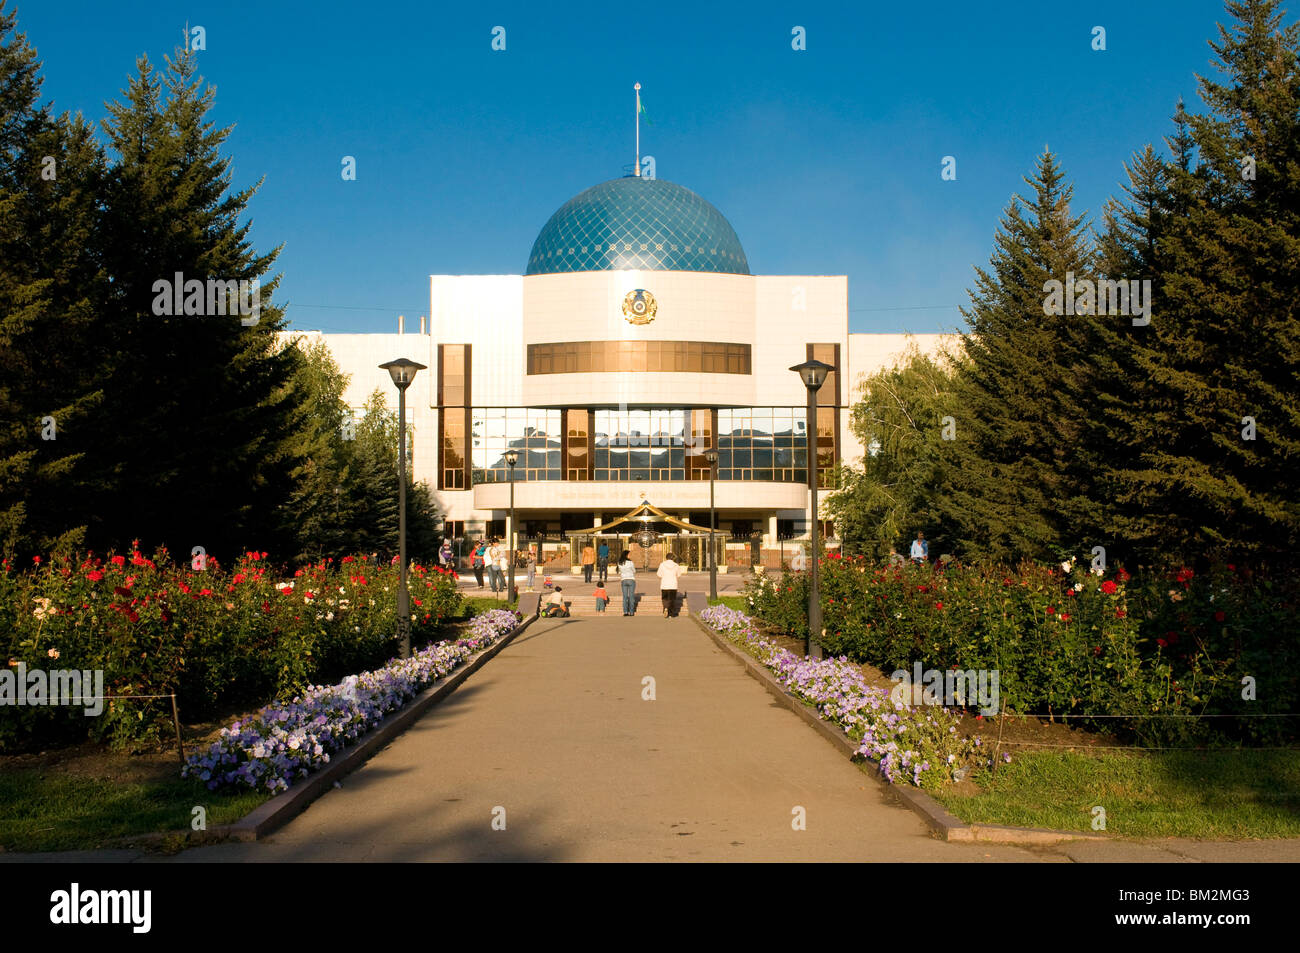 Museum of the First President, Astana, Kazakhstan - Stock Image